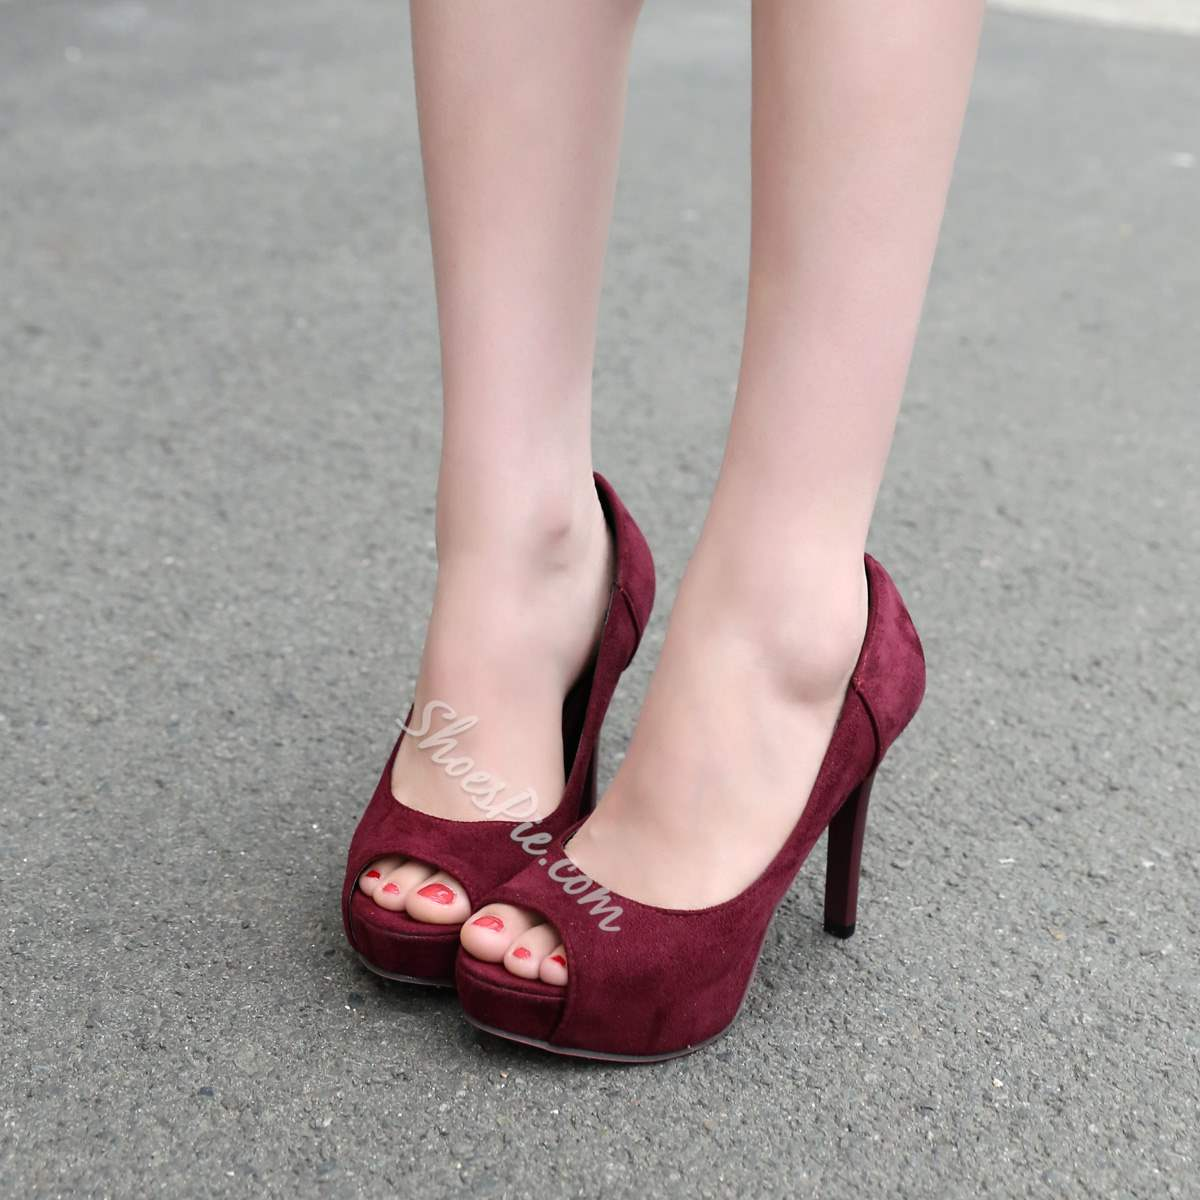 Suede Slip-On Peep Toe Platform Stiletto High Heels